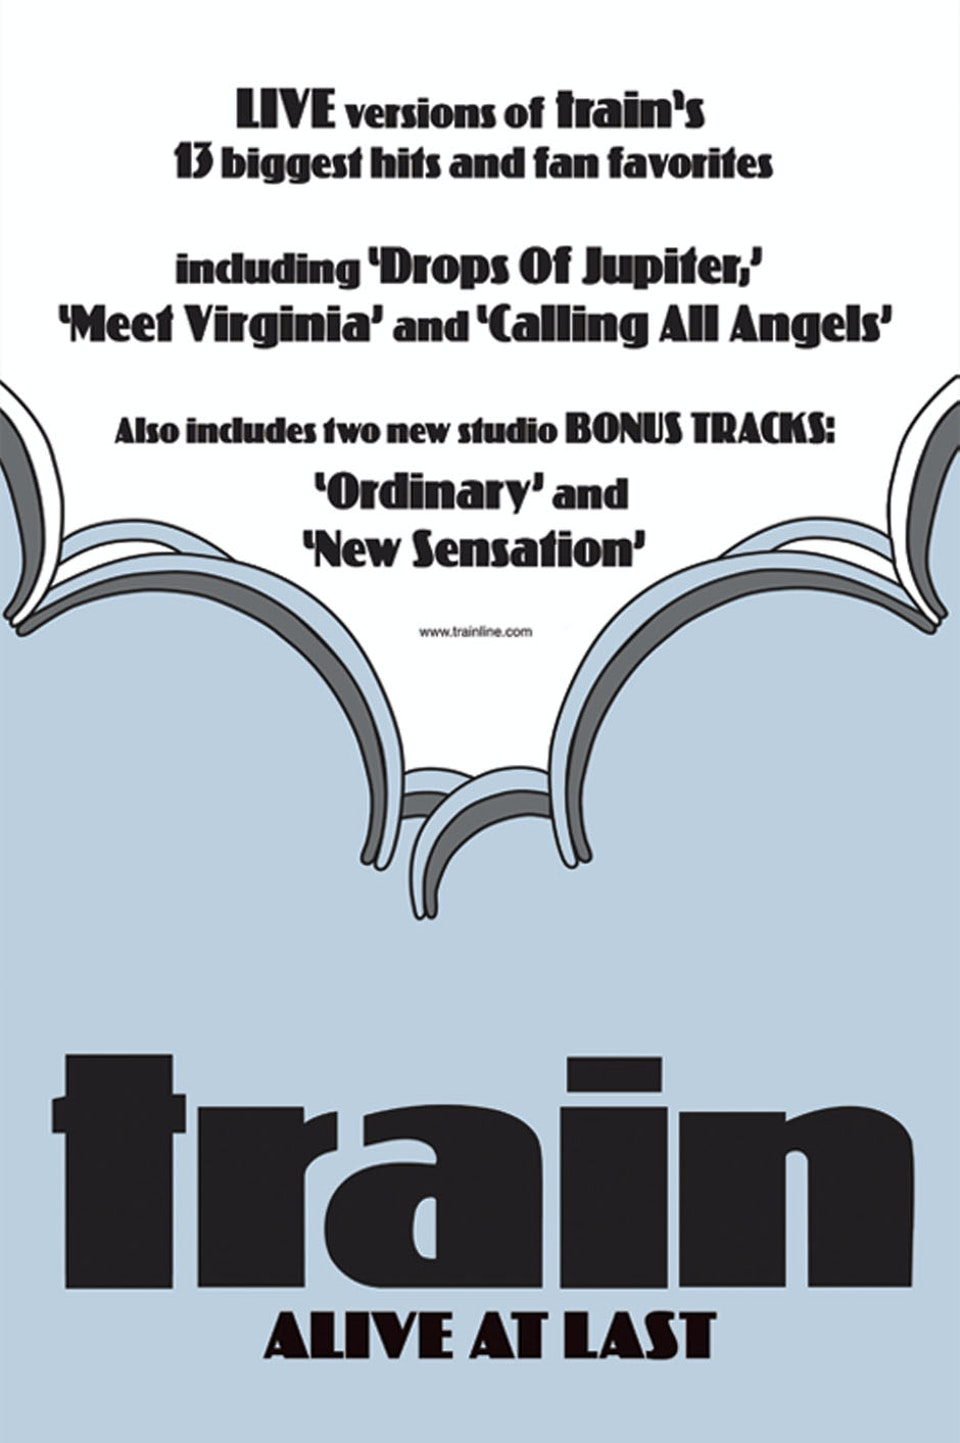 Train Alive at Last - Poster